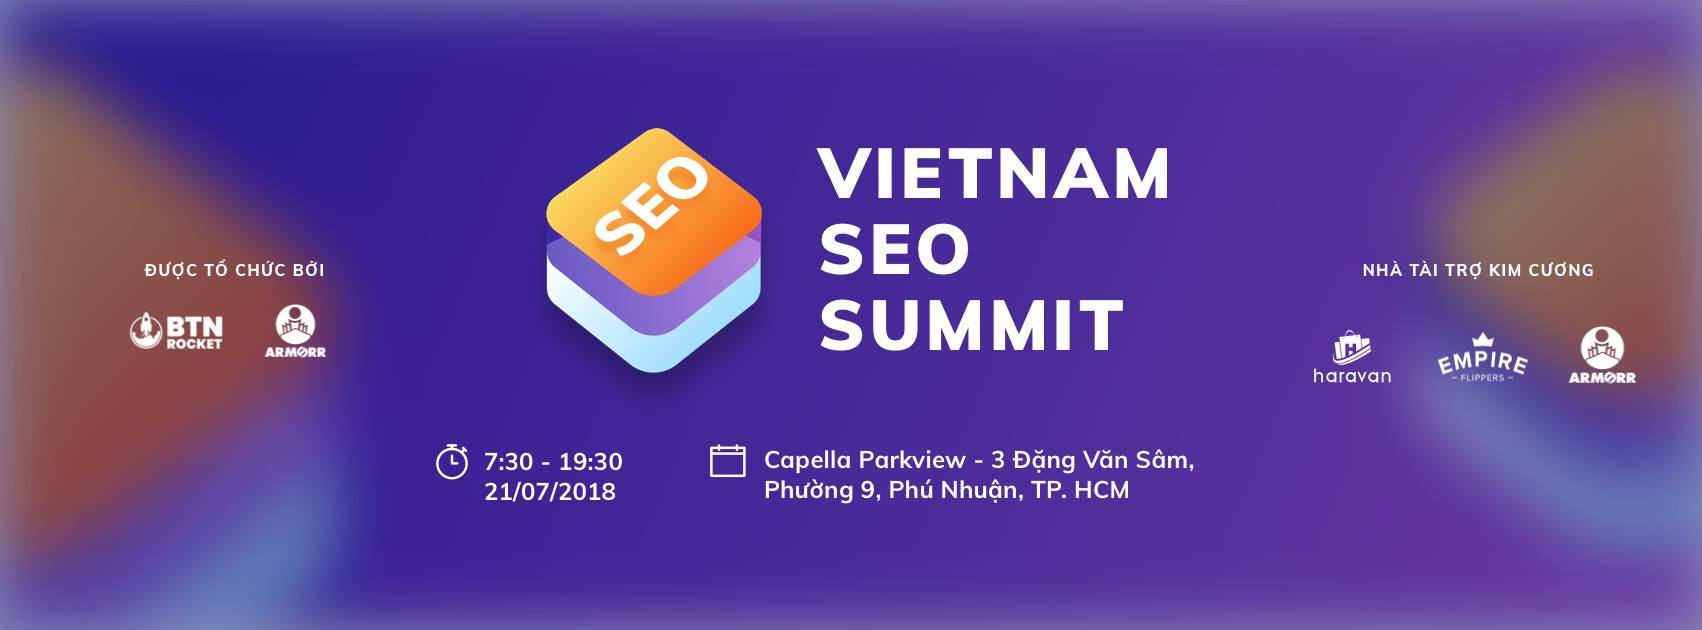 VietNam SEO Summit